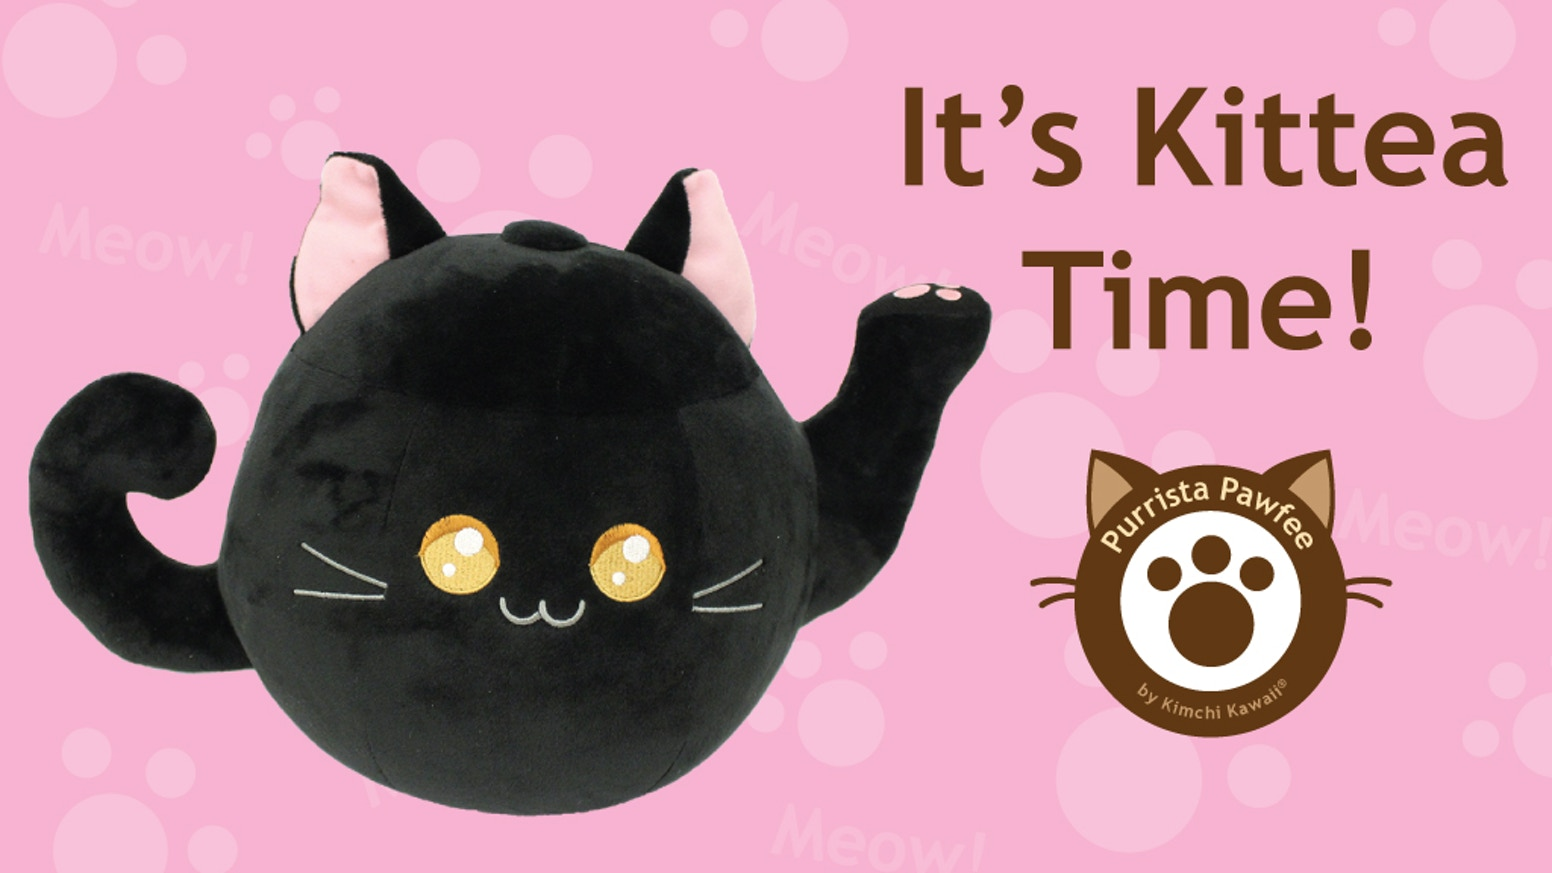 Kittea, a cute black cat teapot was funded in one week! Now you can get your own to cuddle :)